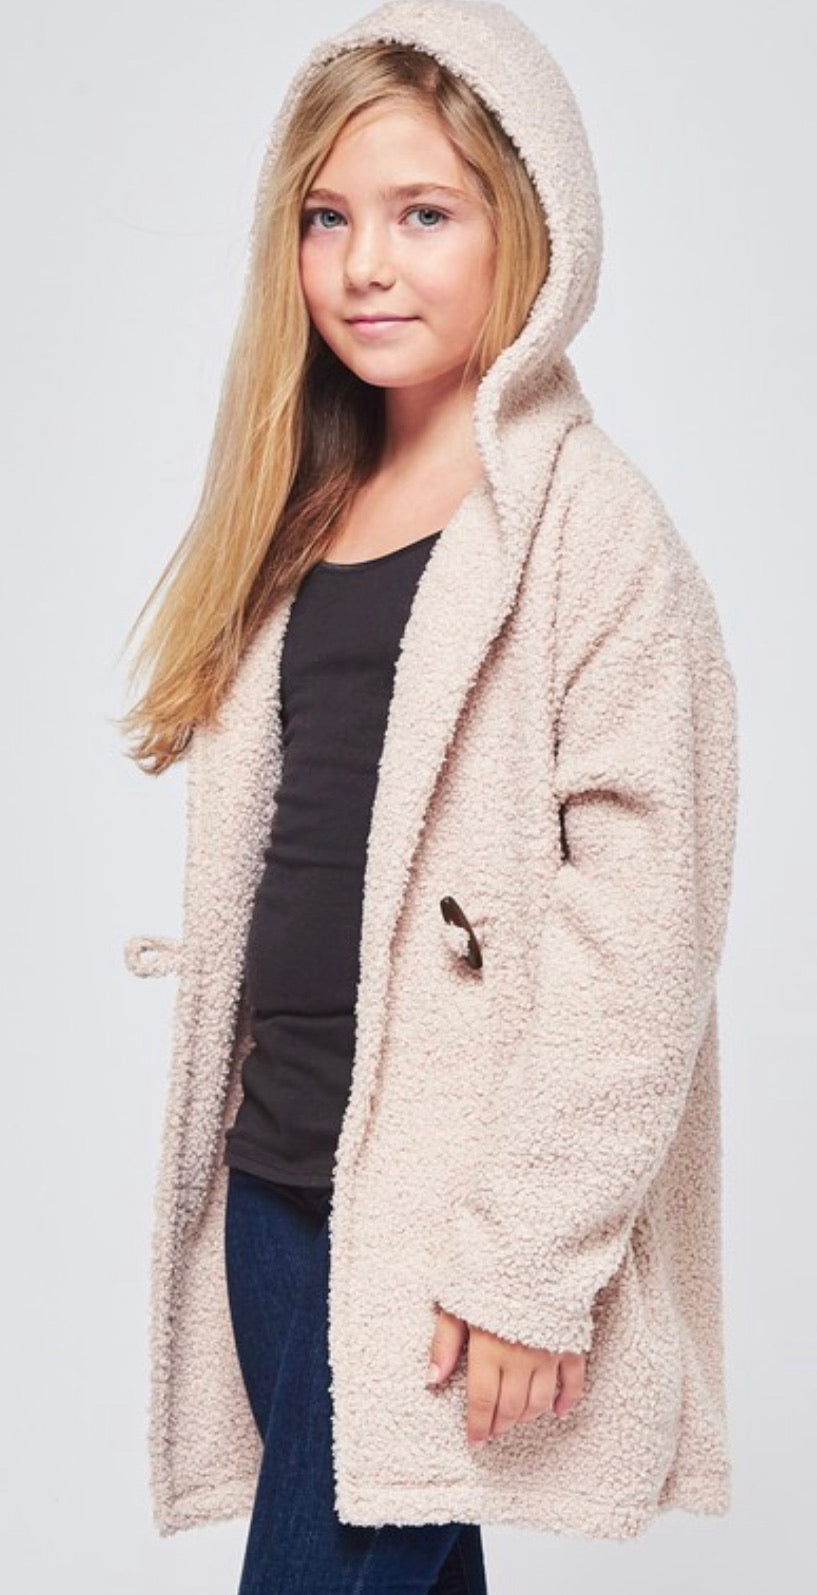 Girls Hooded Fuzzy Cardigan - Blush Boutique